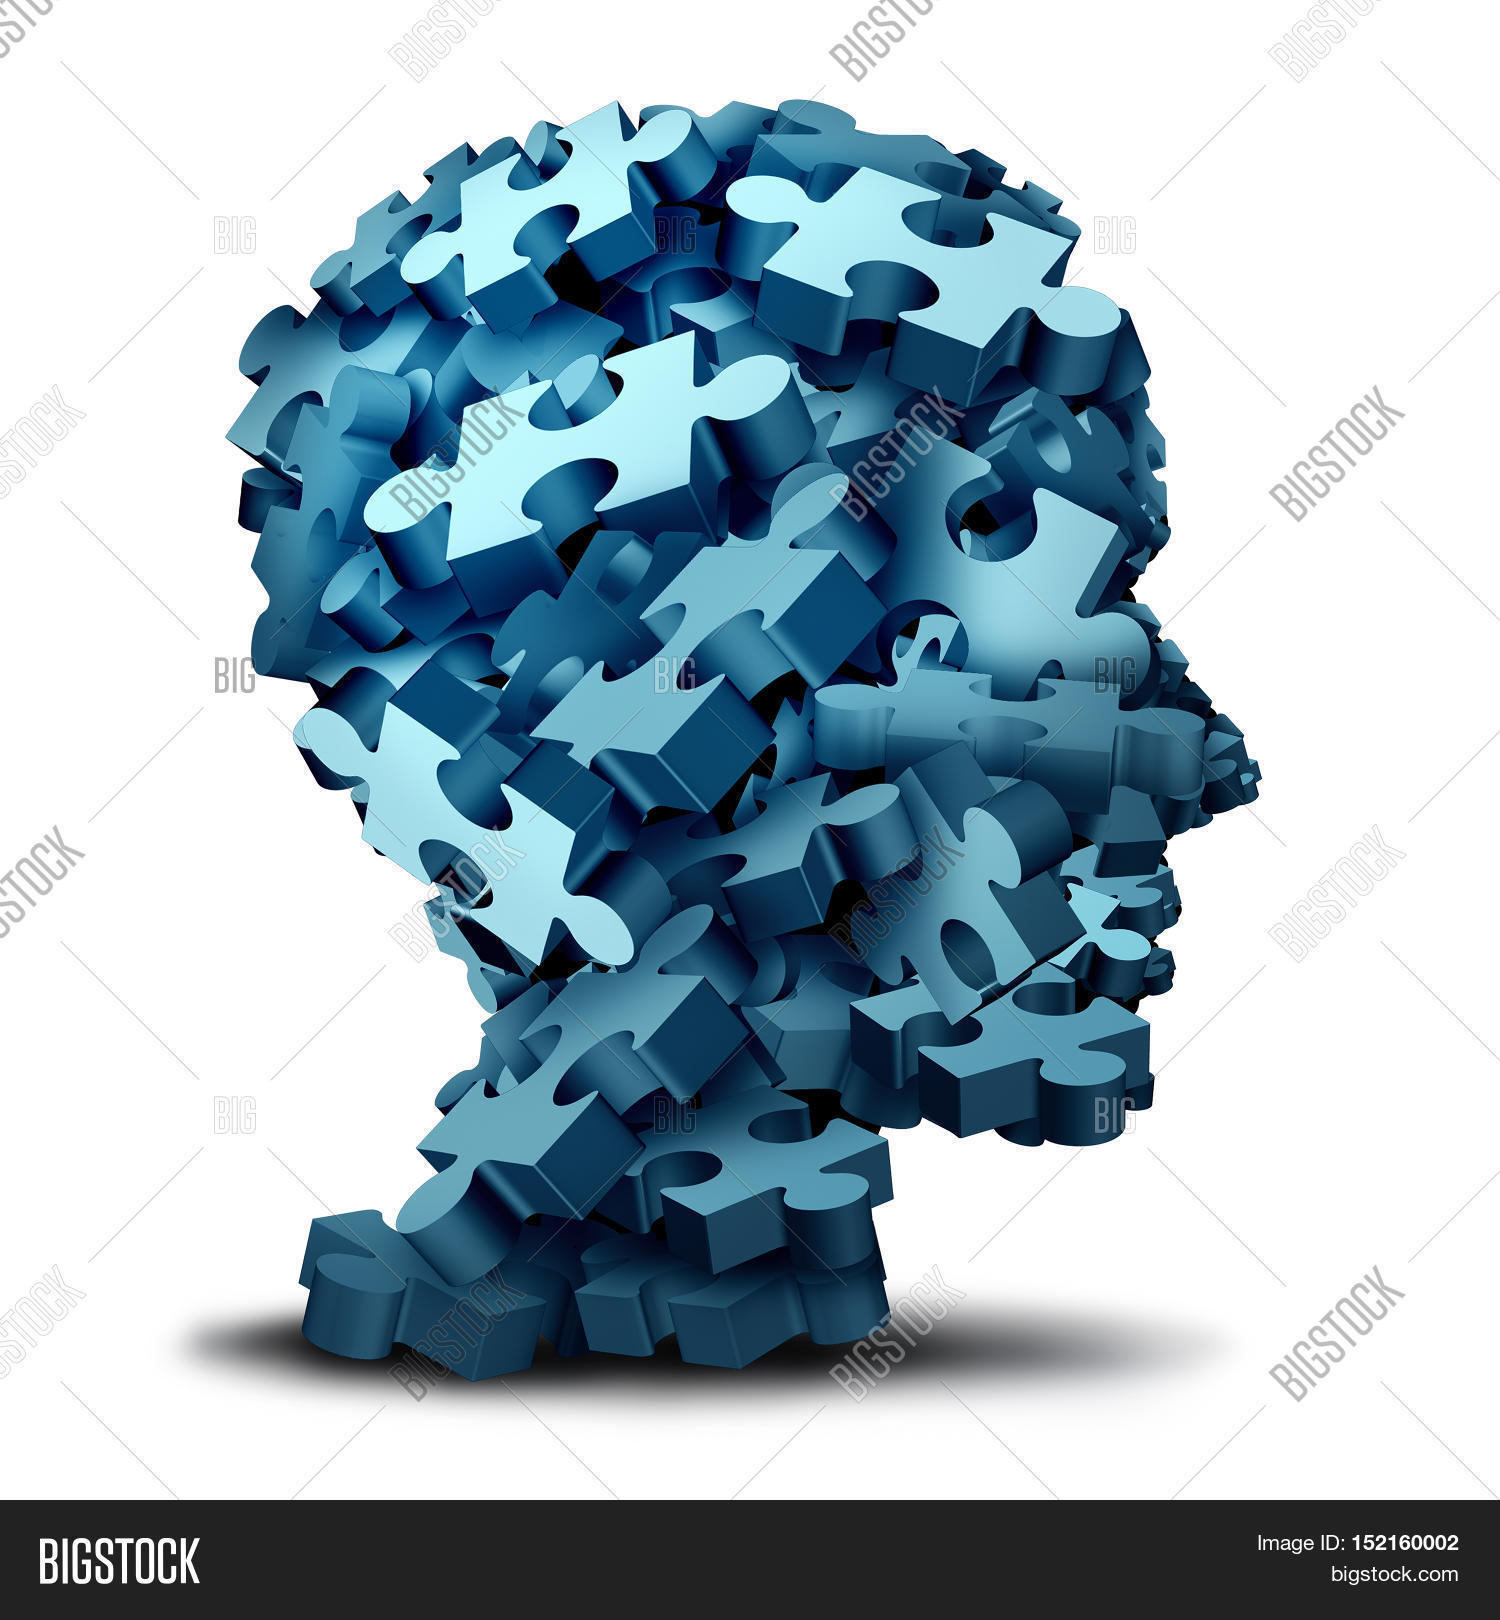 Psychology puzzle concept group 3d image photo bigstock psychology puzzle concept as a a group of 3d illustration jigsaw pieces shaped as a human head buycottarizona